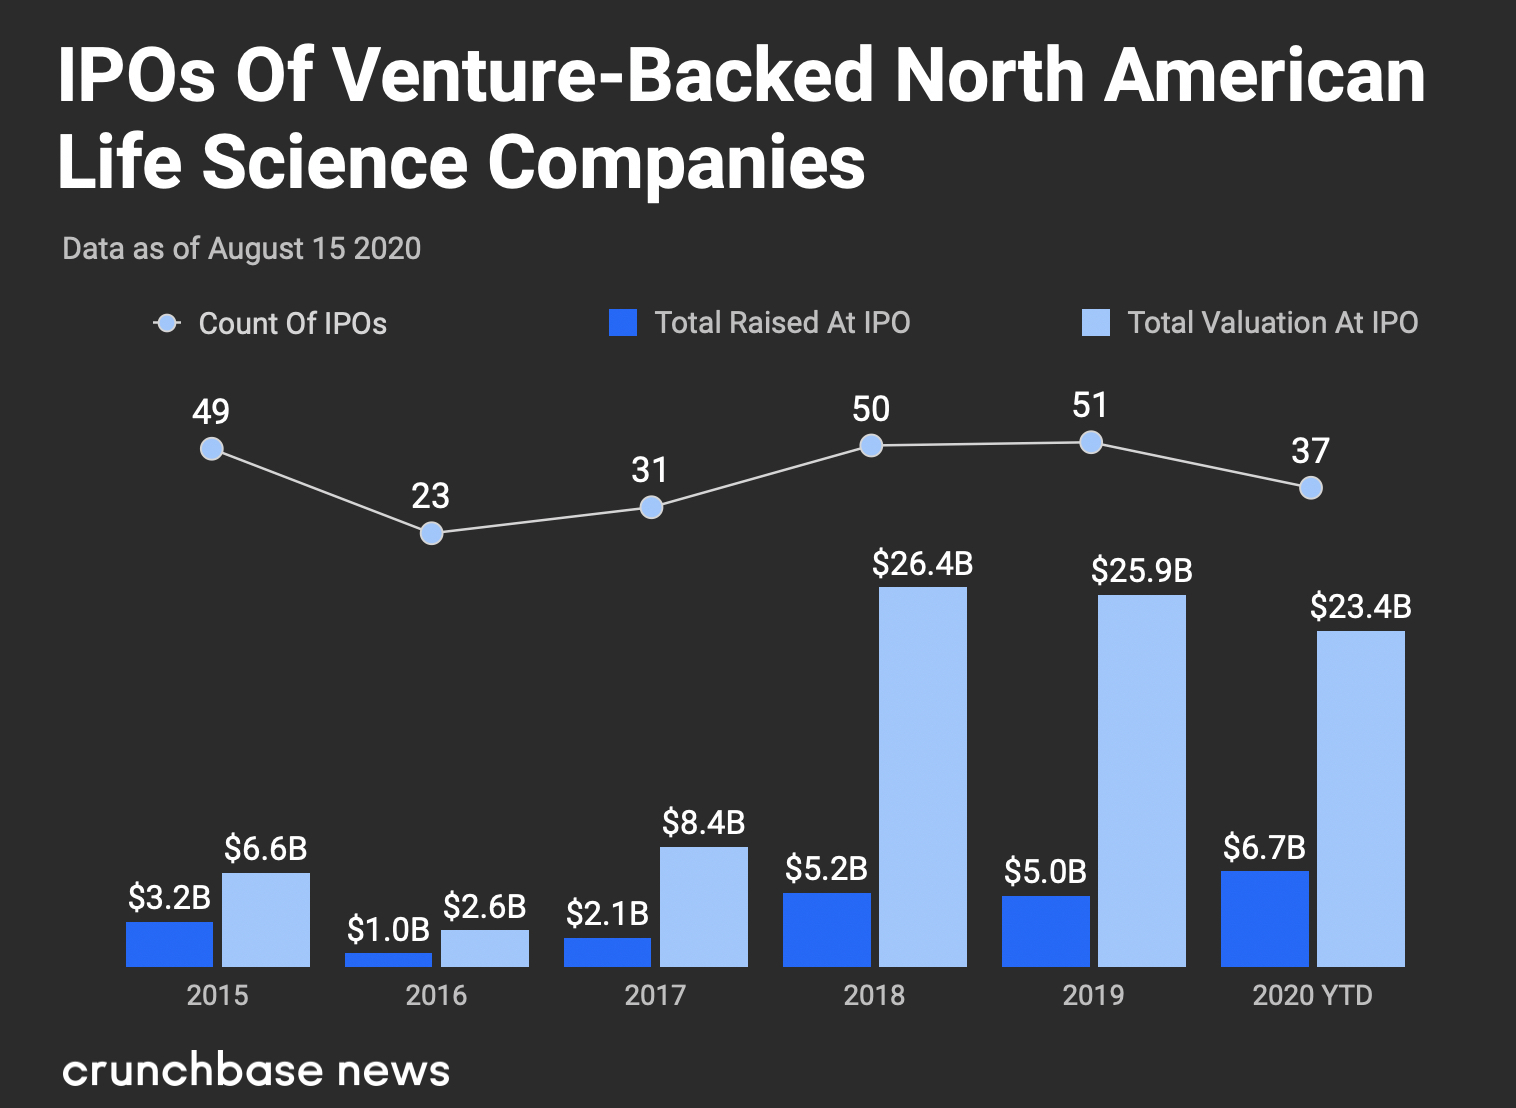 IPOs of Venture-Backed North American Life Science Companies